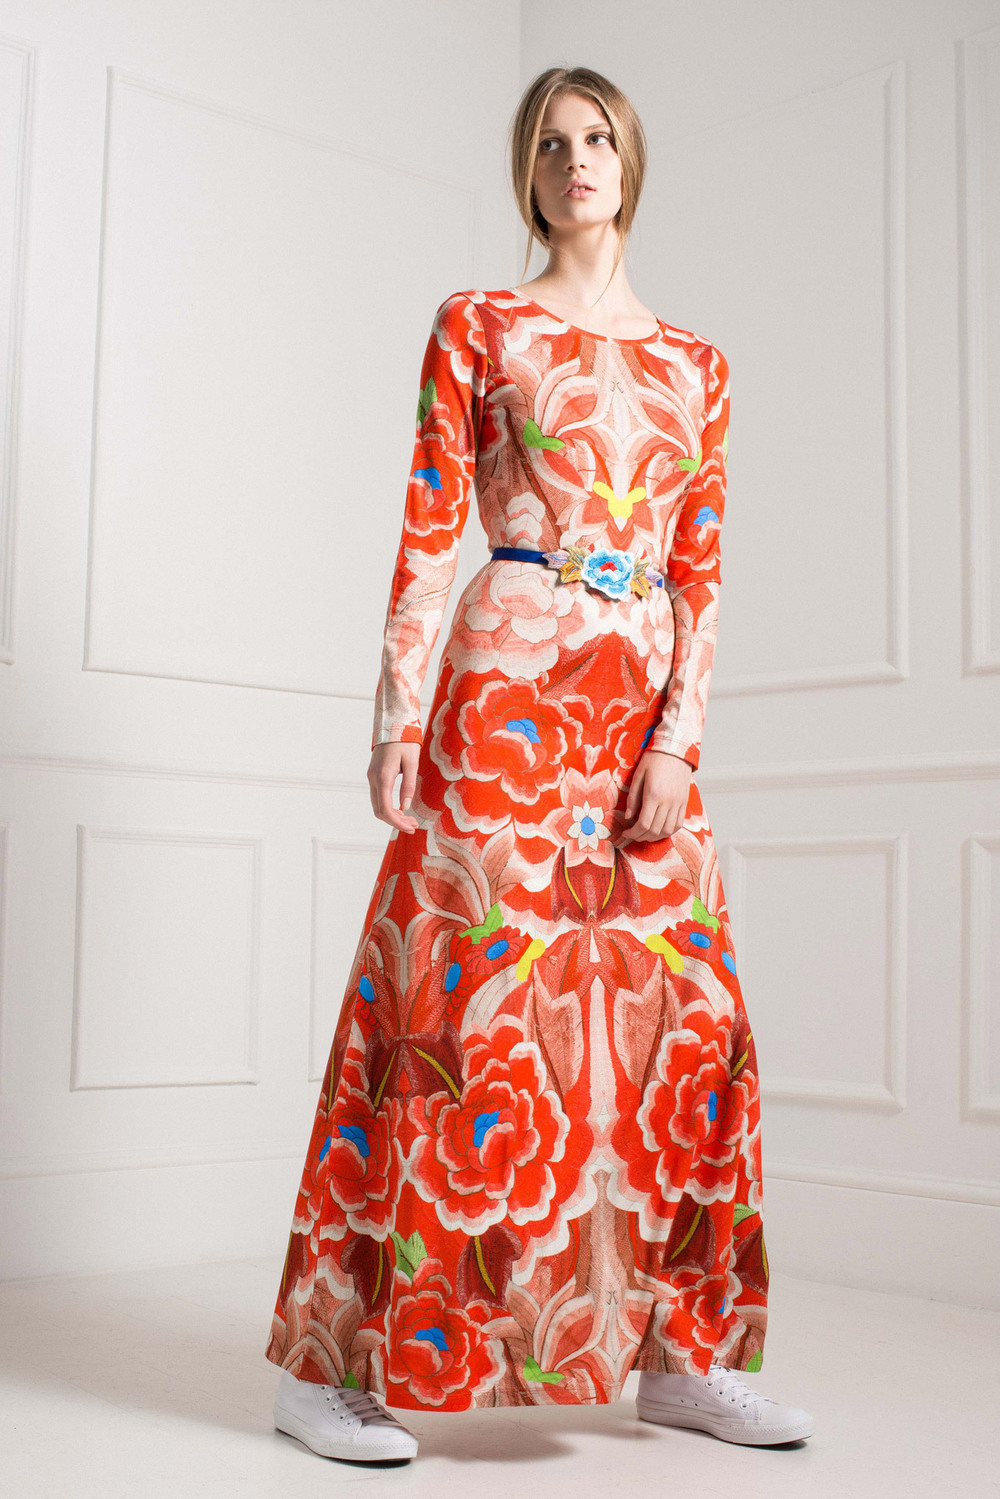 Temperley_London_30_1366.jpg